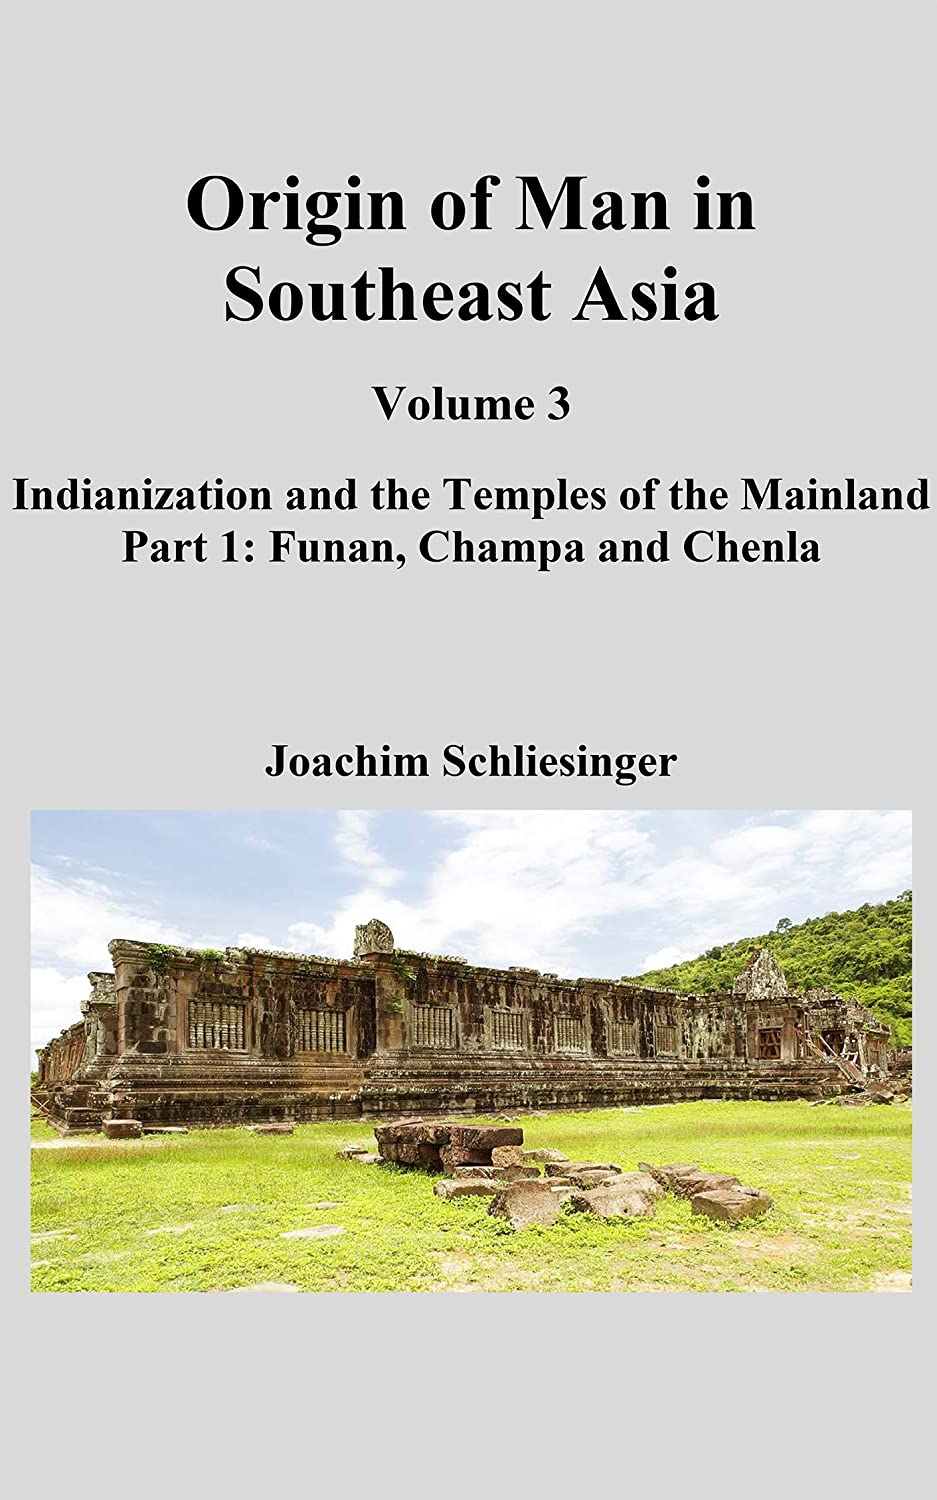 Origin of Man in Southeast Asia 3 - Part 1: Indianization and the ...